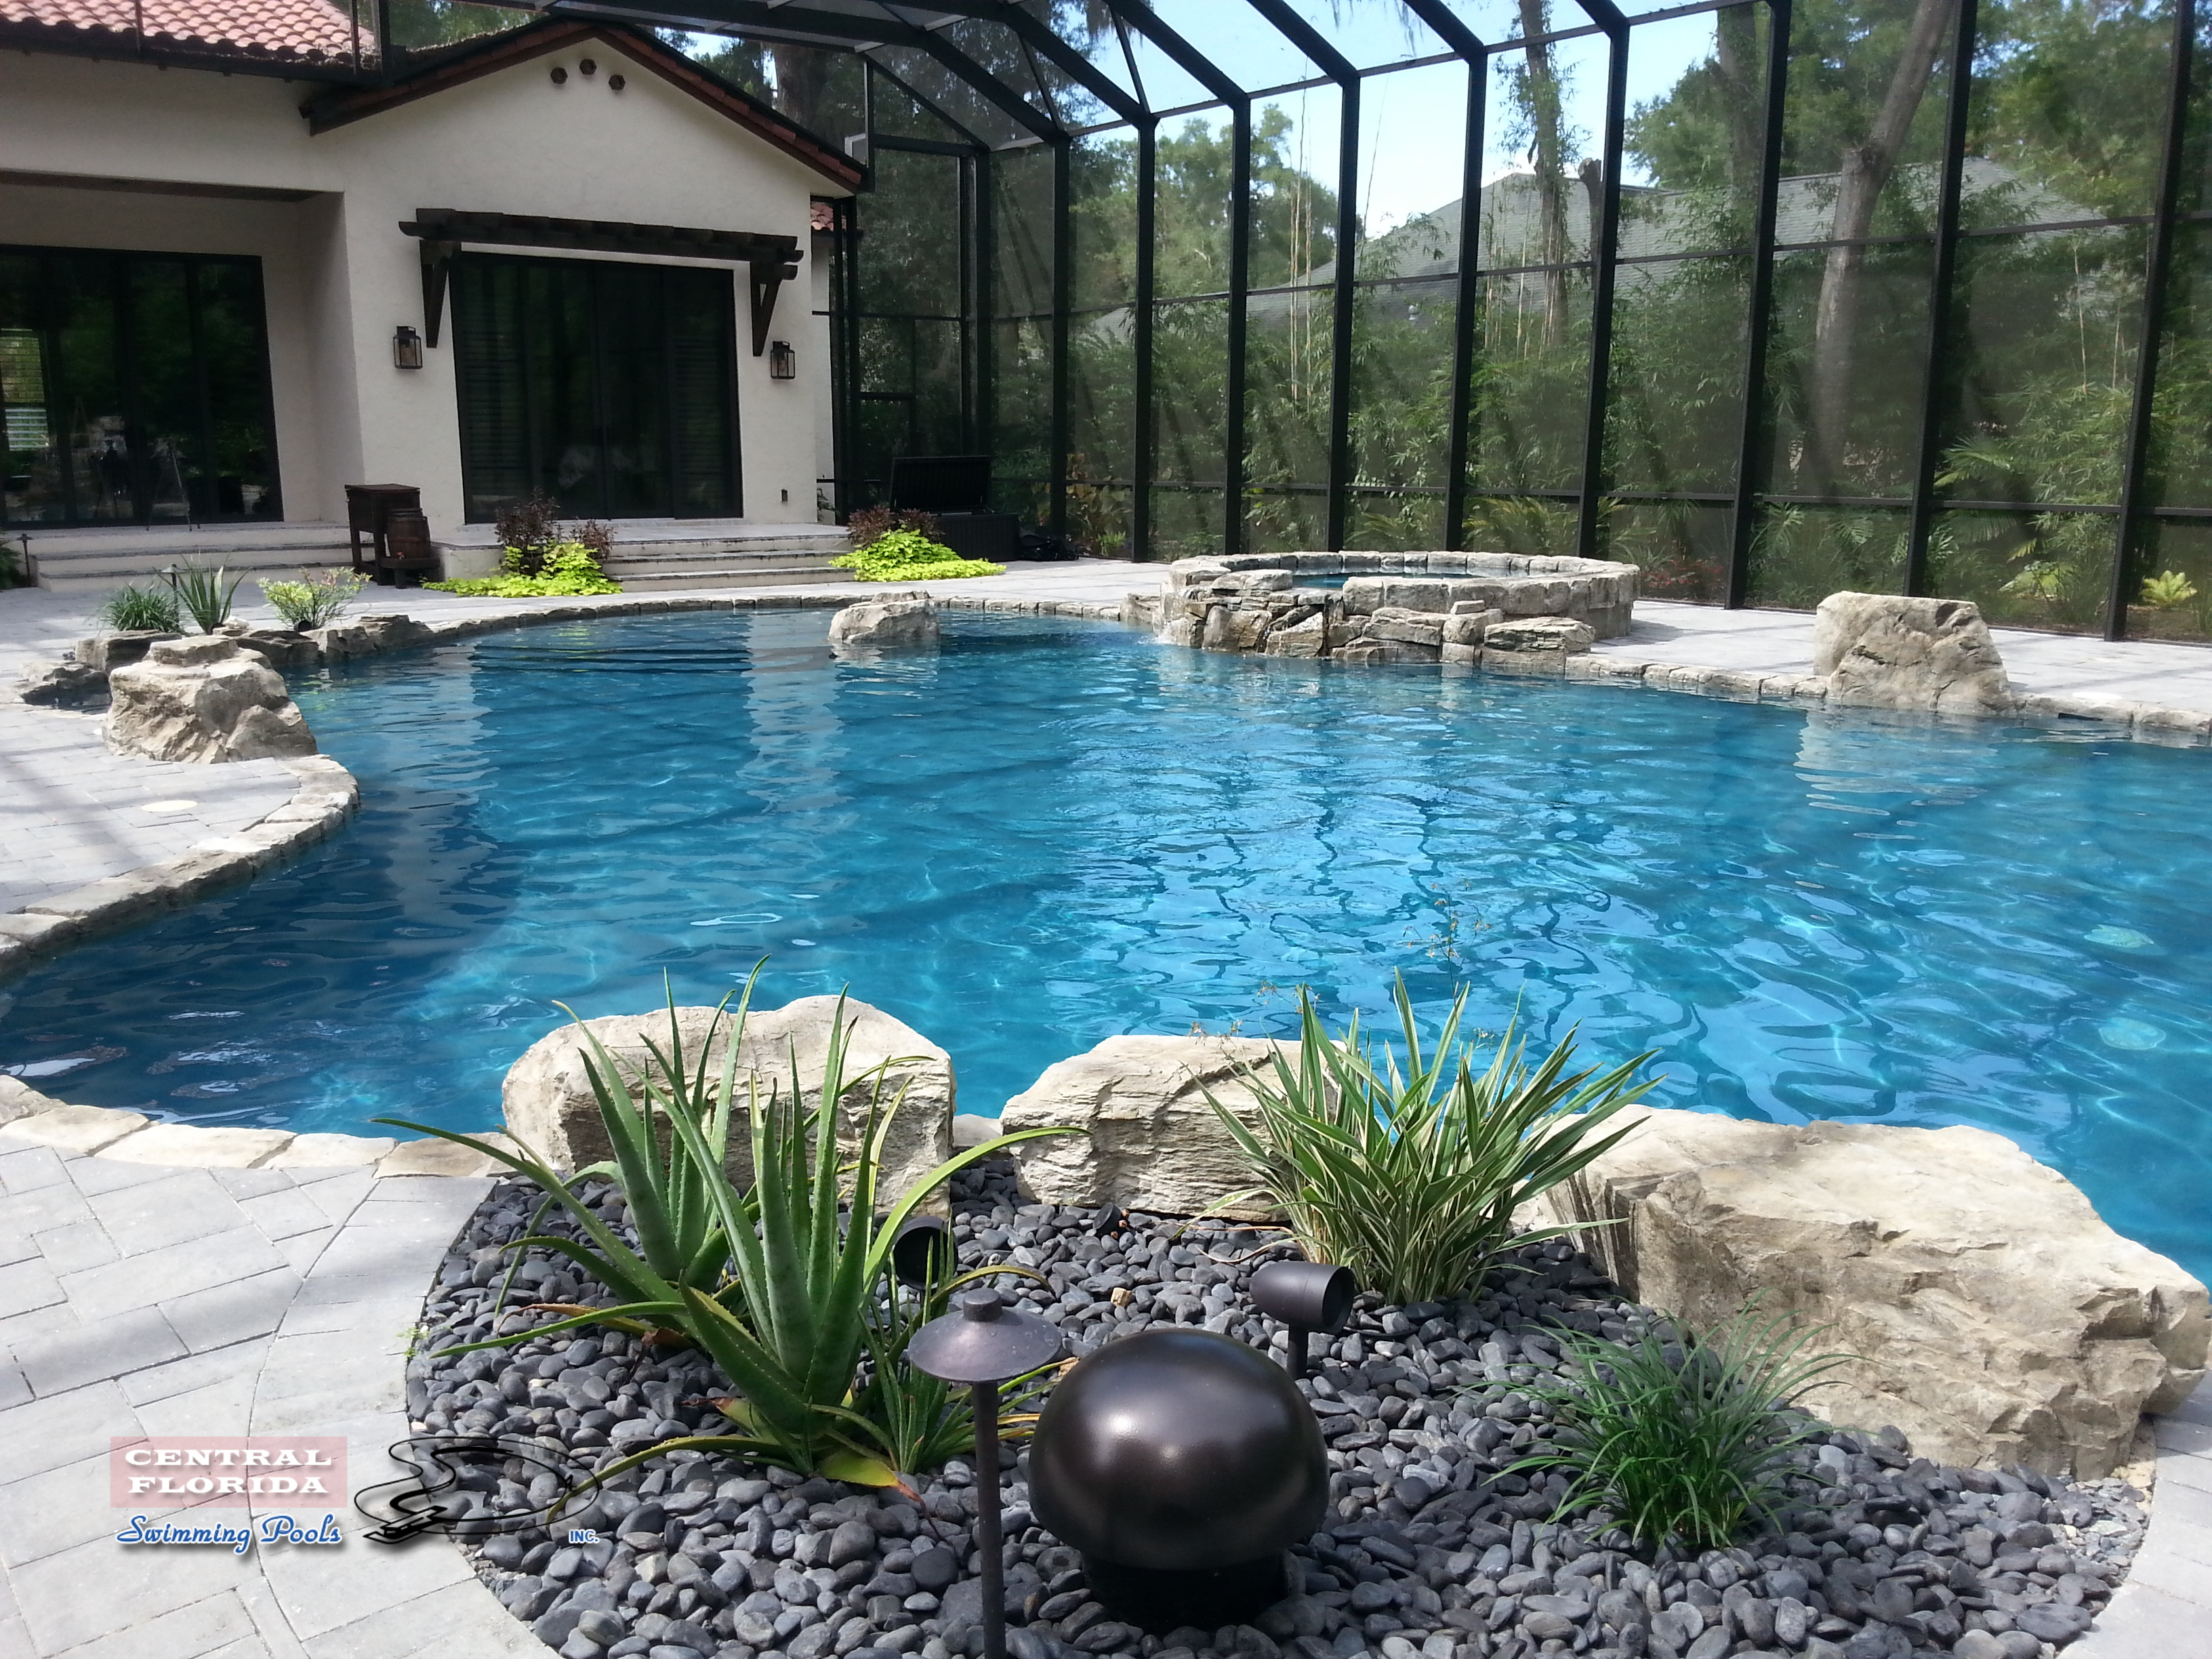 Central Florida Swimming Pools Inc Website Home Page